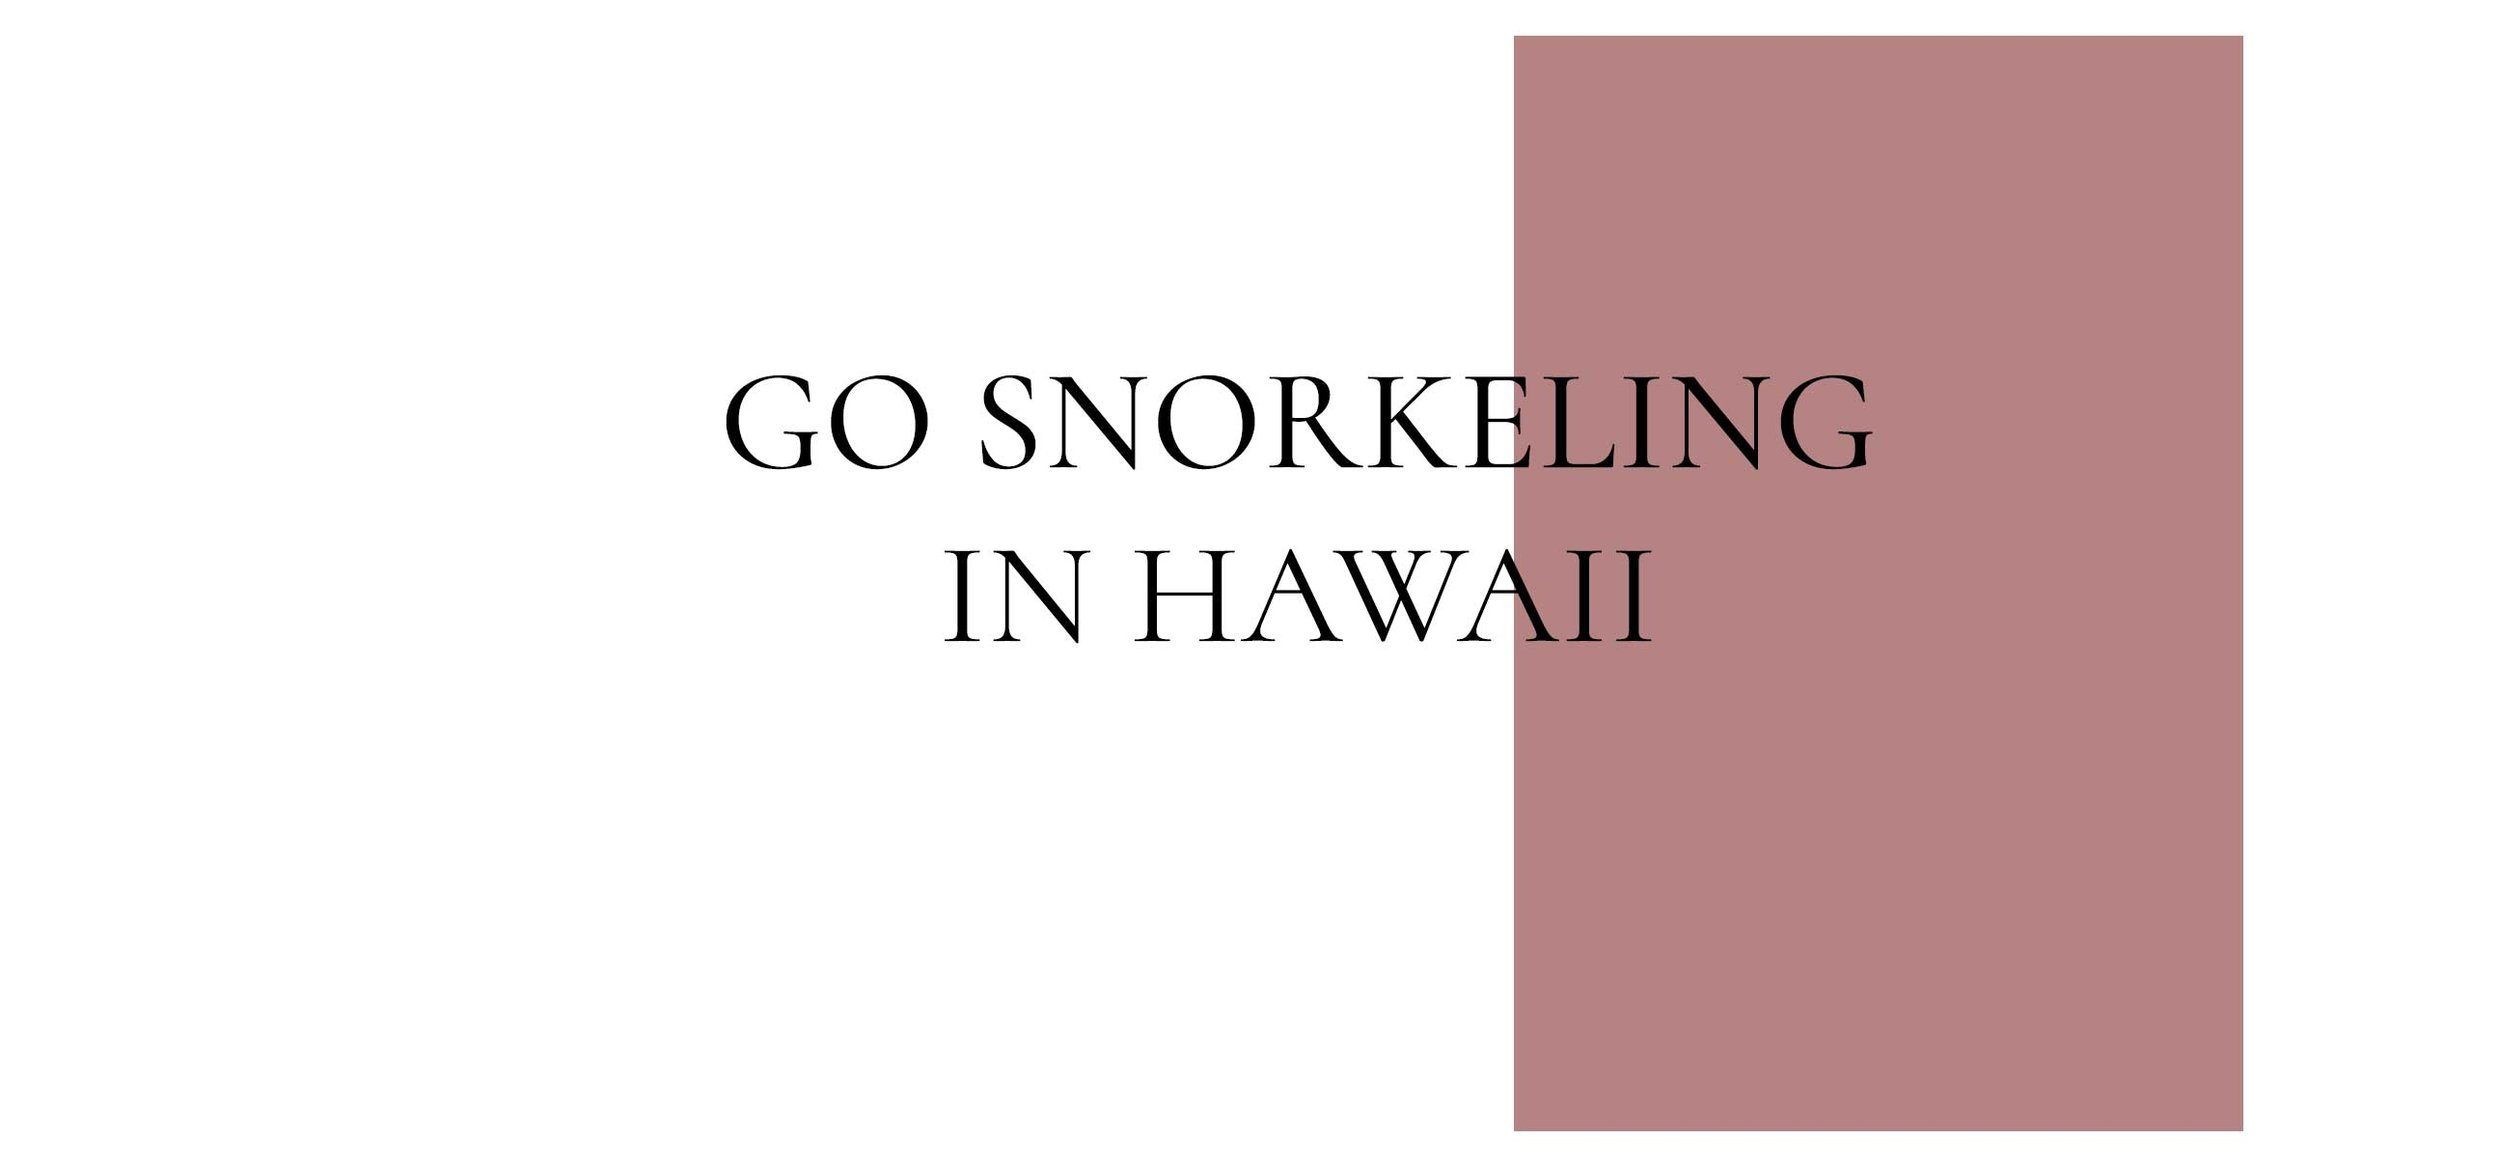 1-Go-Snorkeling-In-Hawaii.jpg